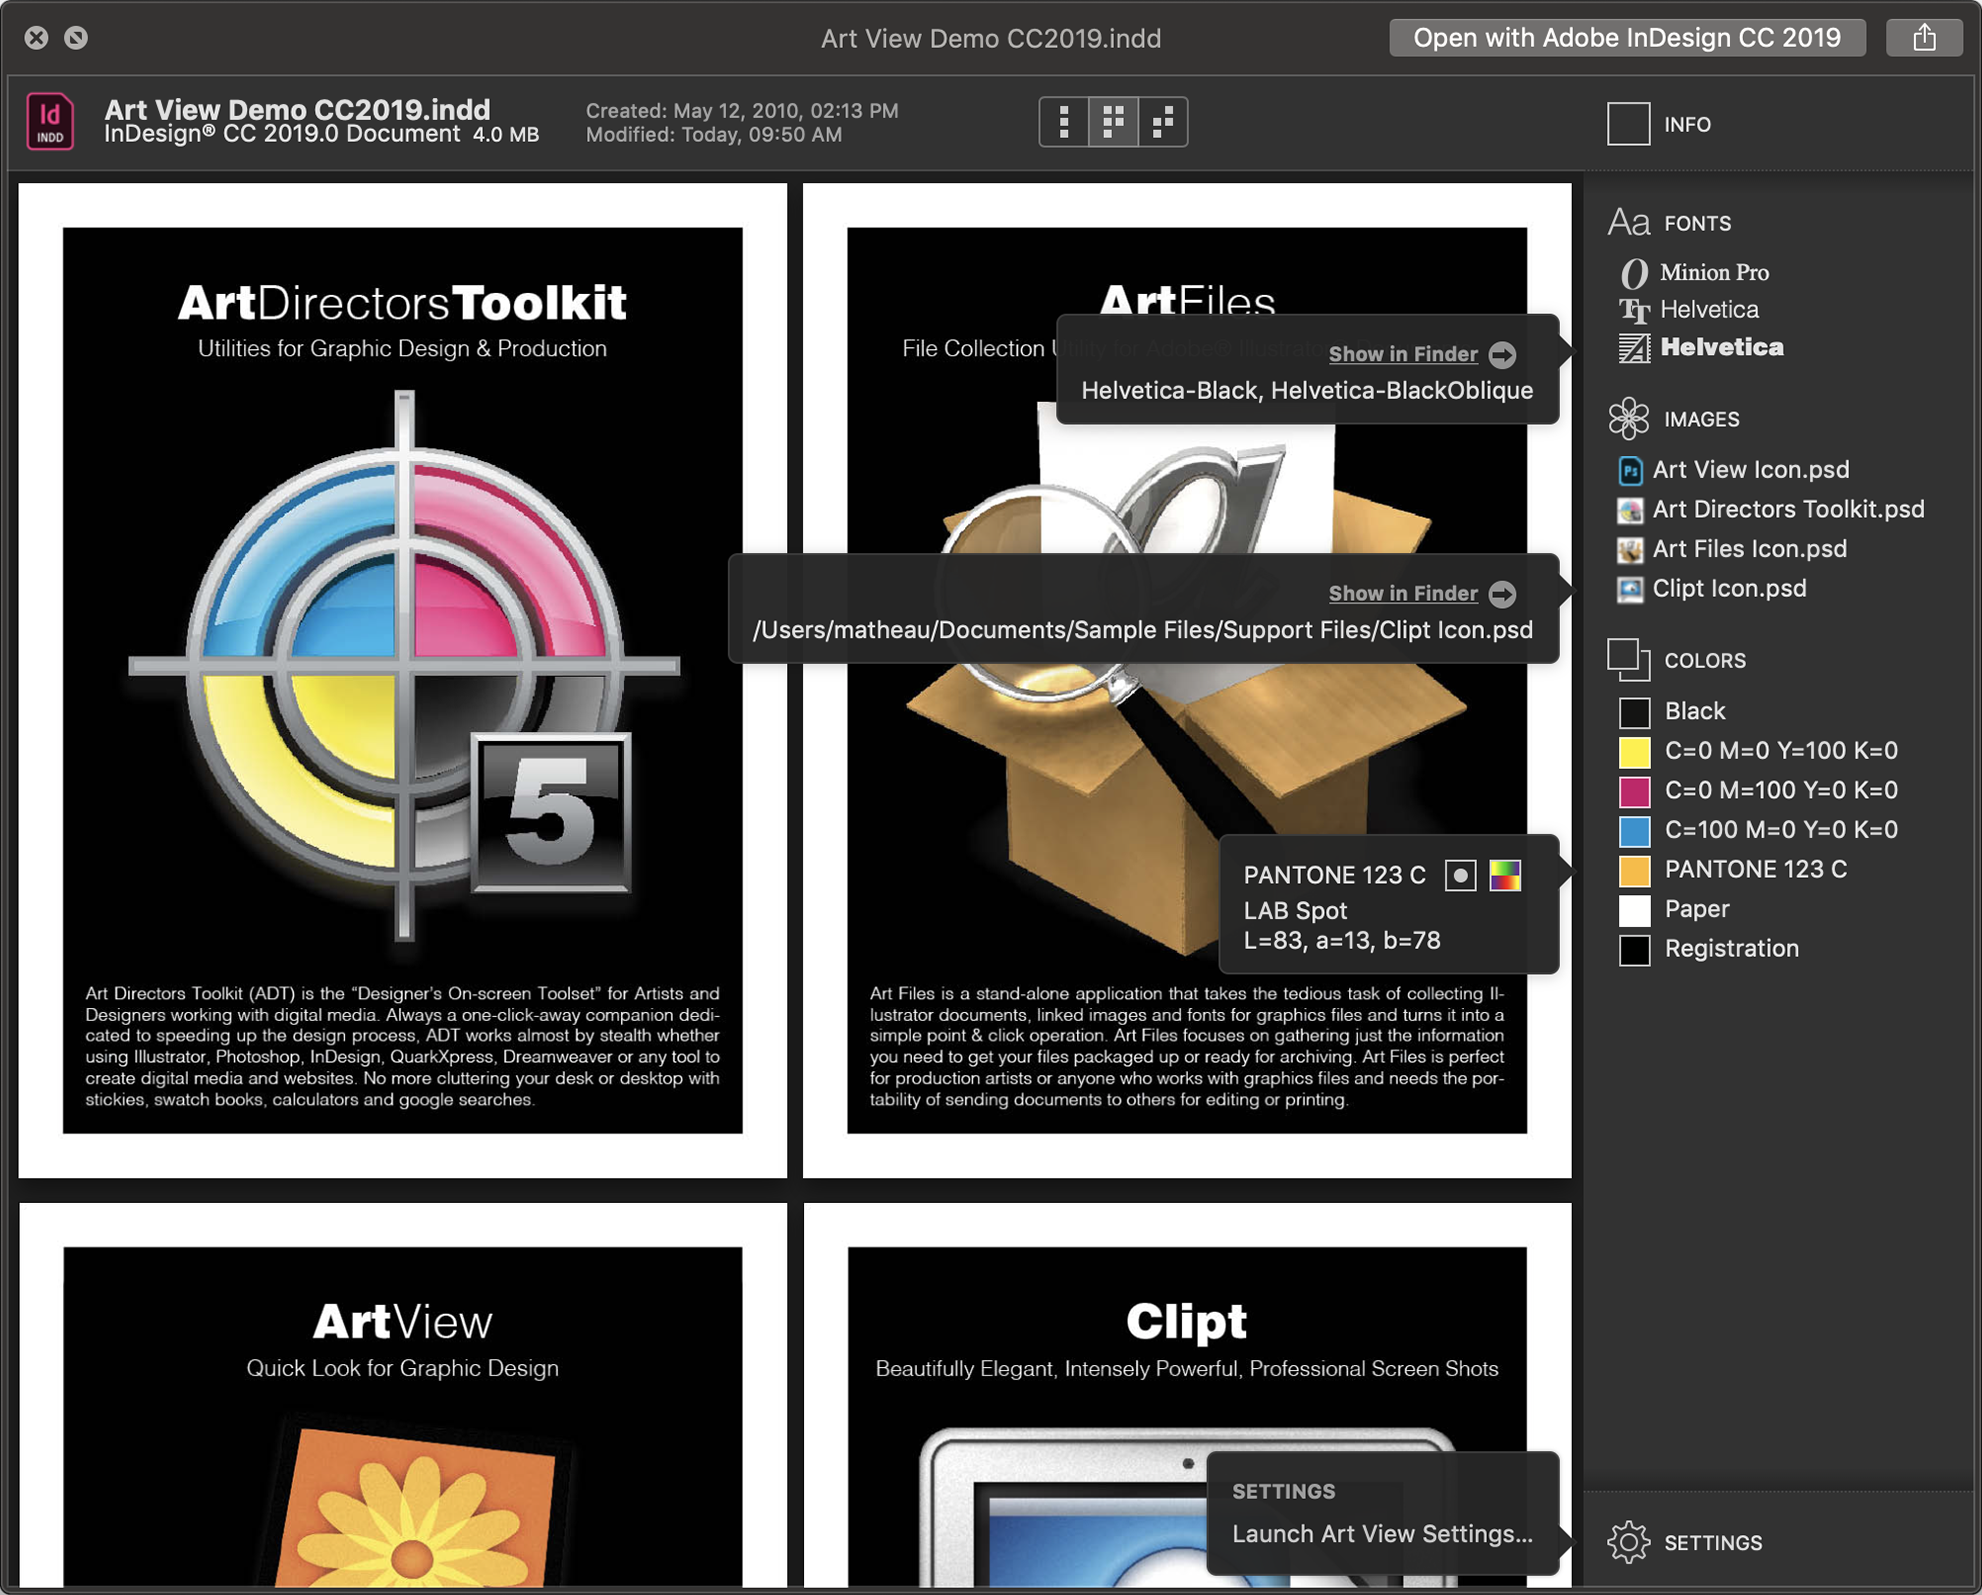 Automatically uninstall Art Directors Toolkit 5.5.1 with MacRemover (recommended):